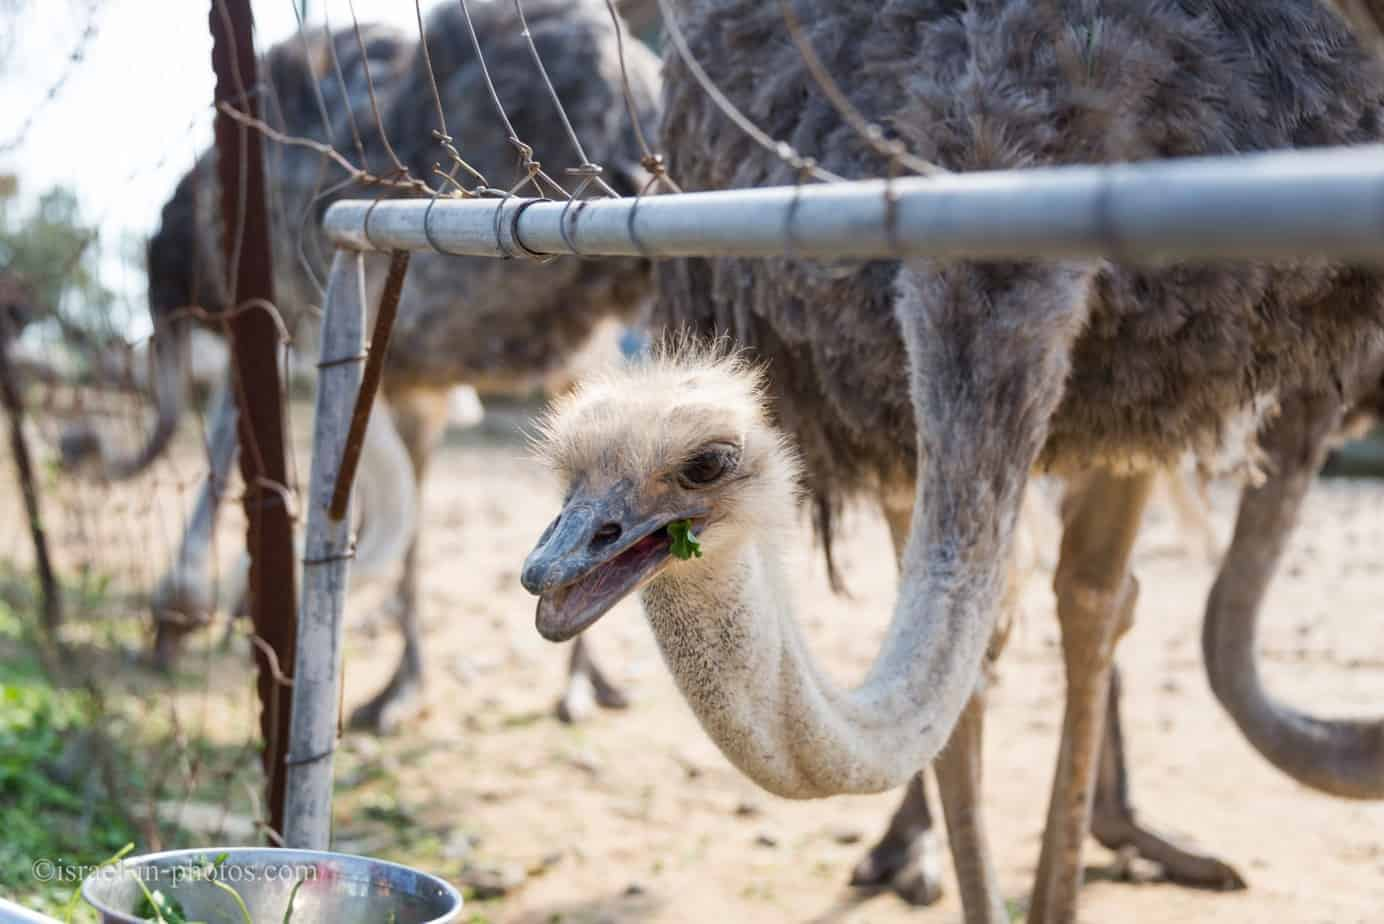 Visit to Ostrich Farm in the Negev